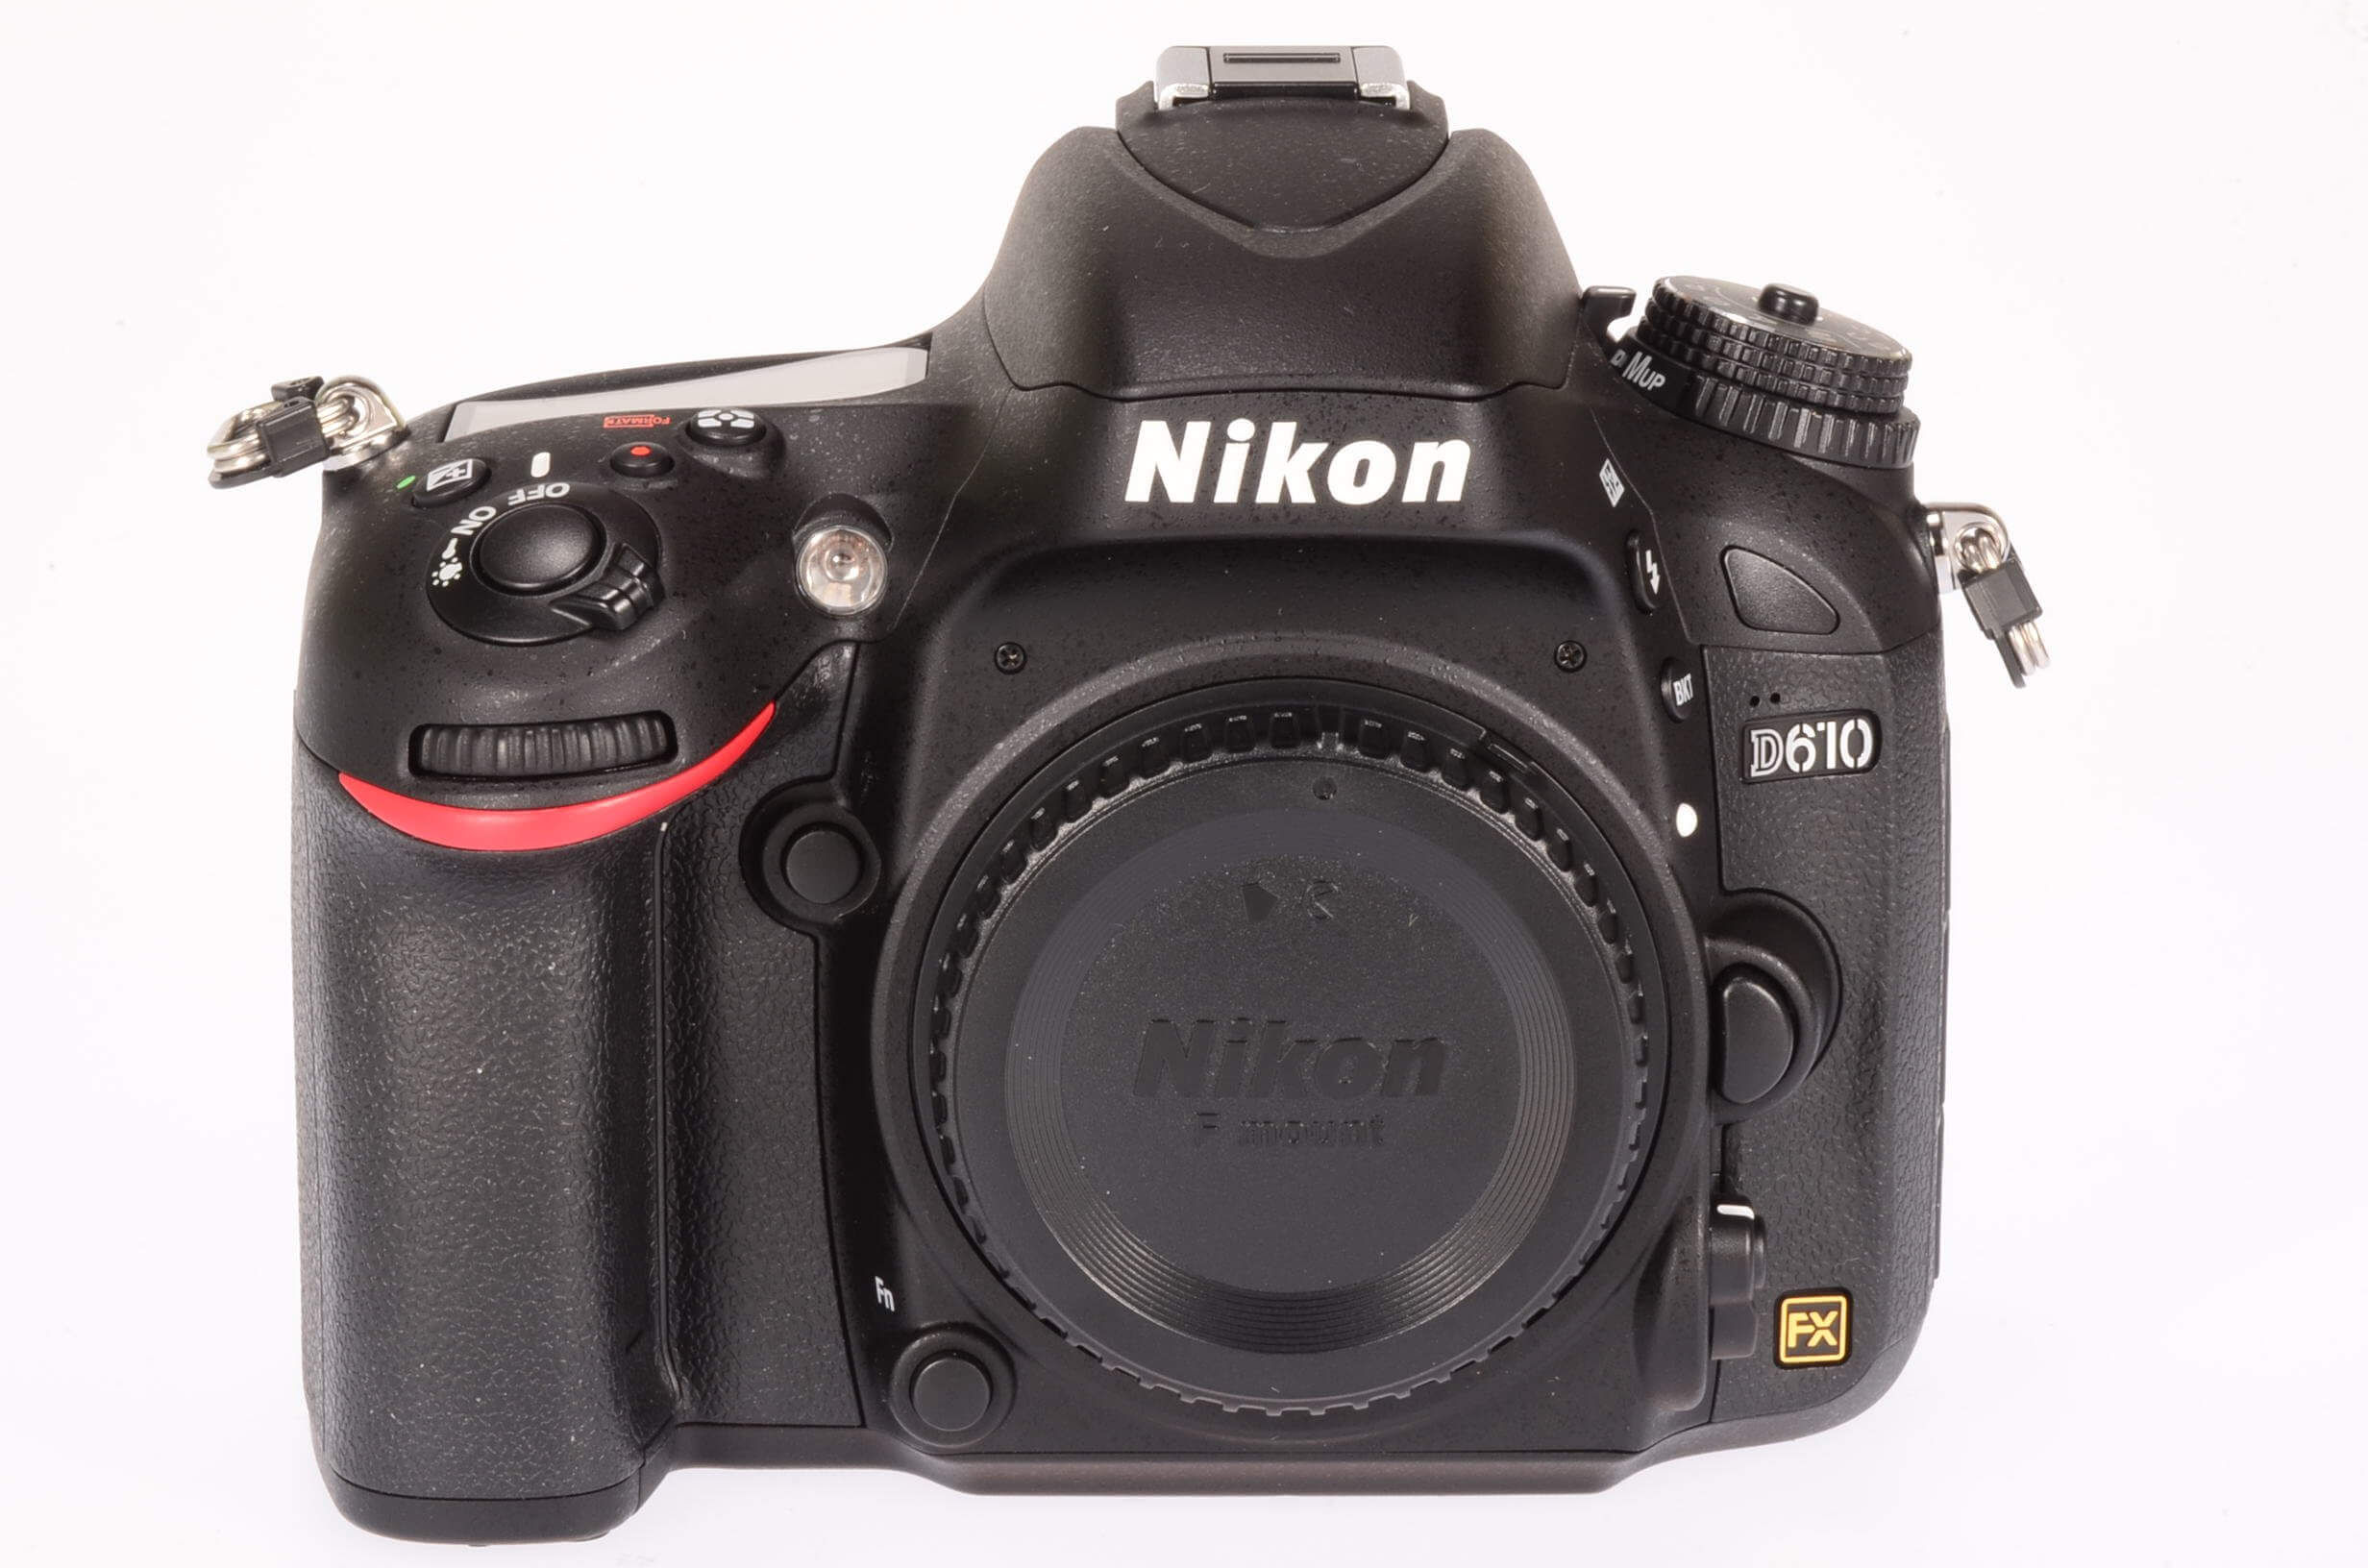 Nikon D610 body, mint and boxed, only 914 actuations!